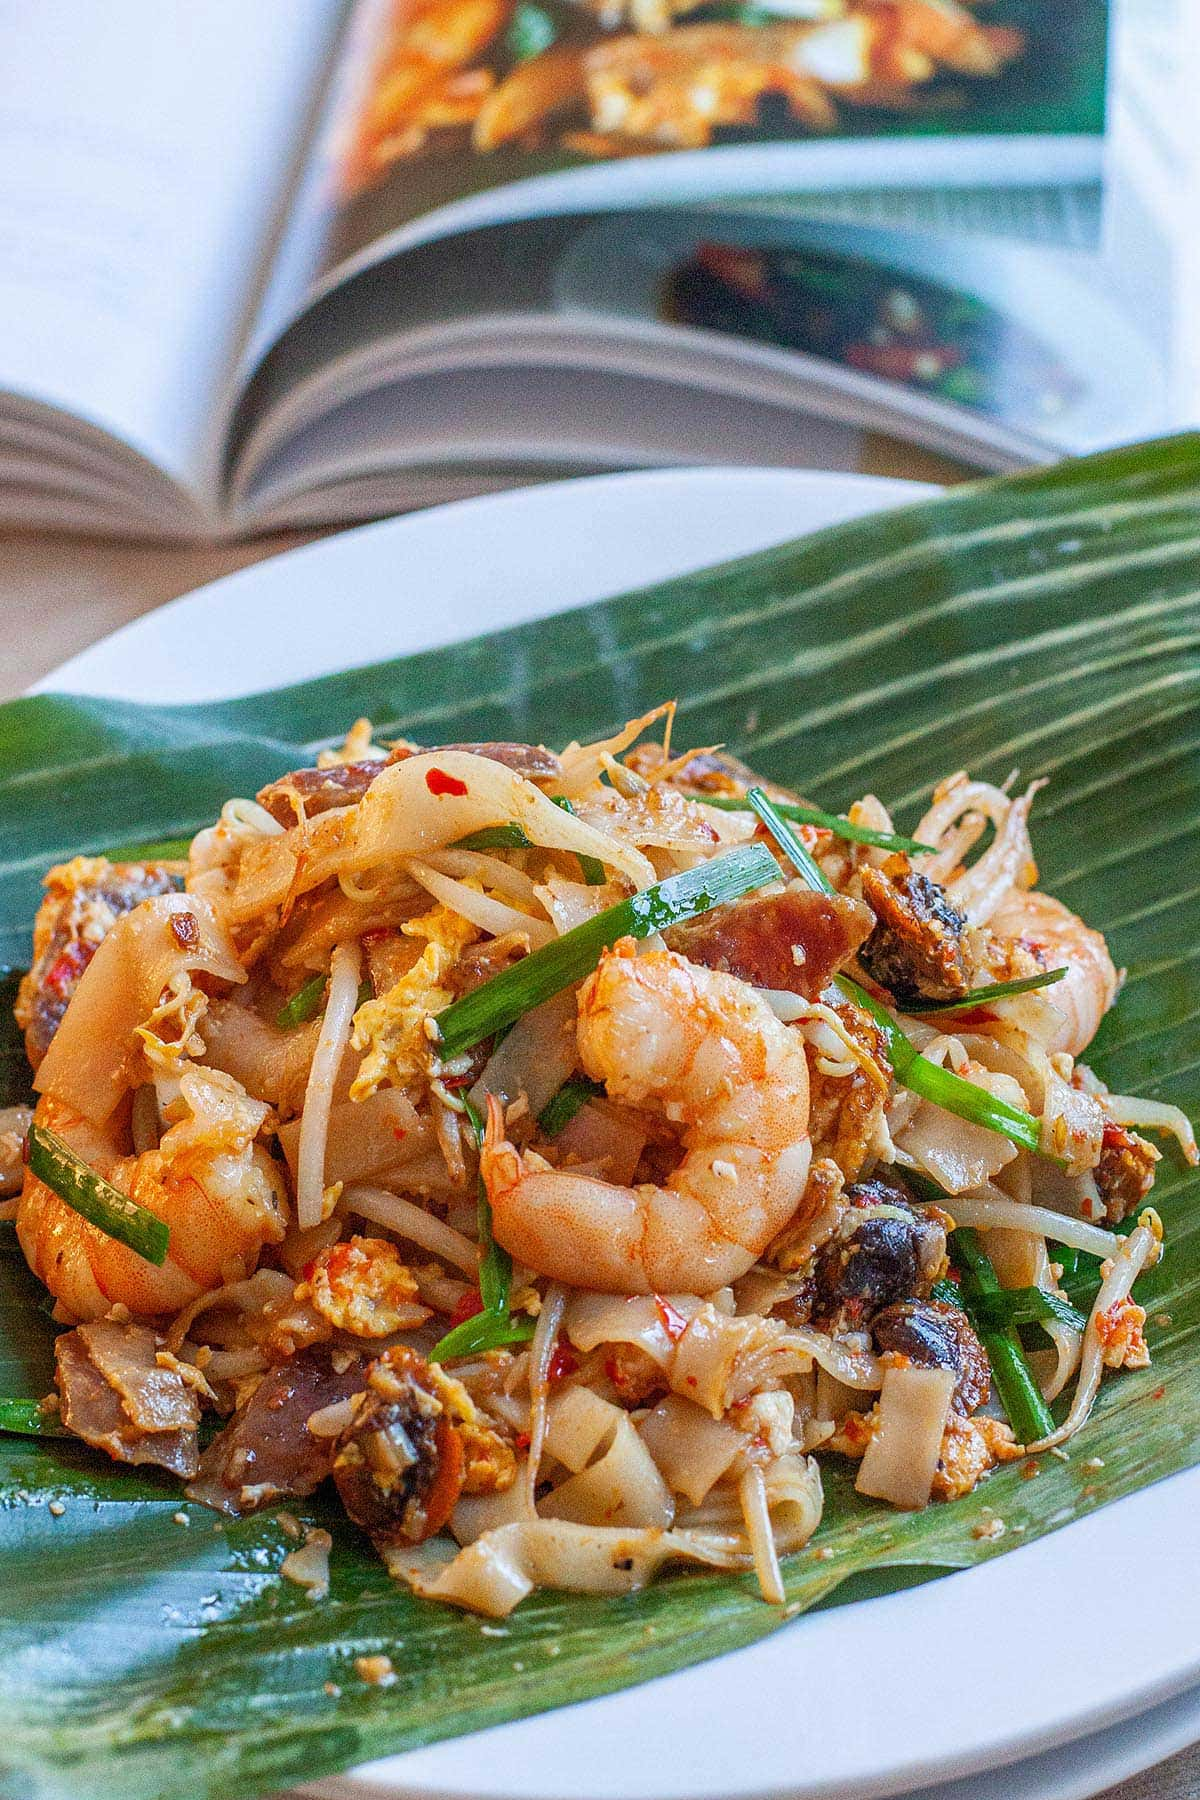 Authentic Penang Char Kuey Teow with step-by-step recipe guide. Char Kuey Teow is a famous Penang hawker food. The best Char Kuey Teow recipe on the web.   rasamalaysia.com